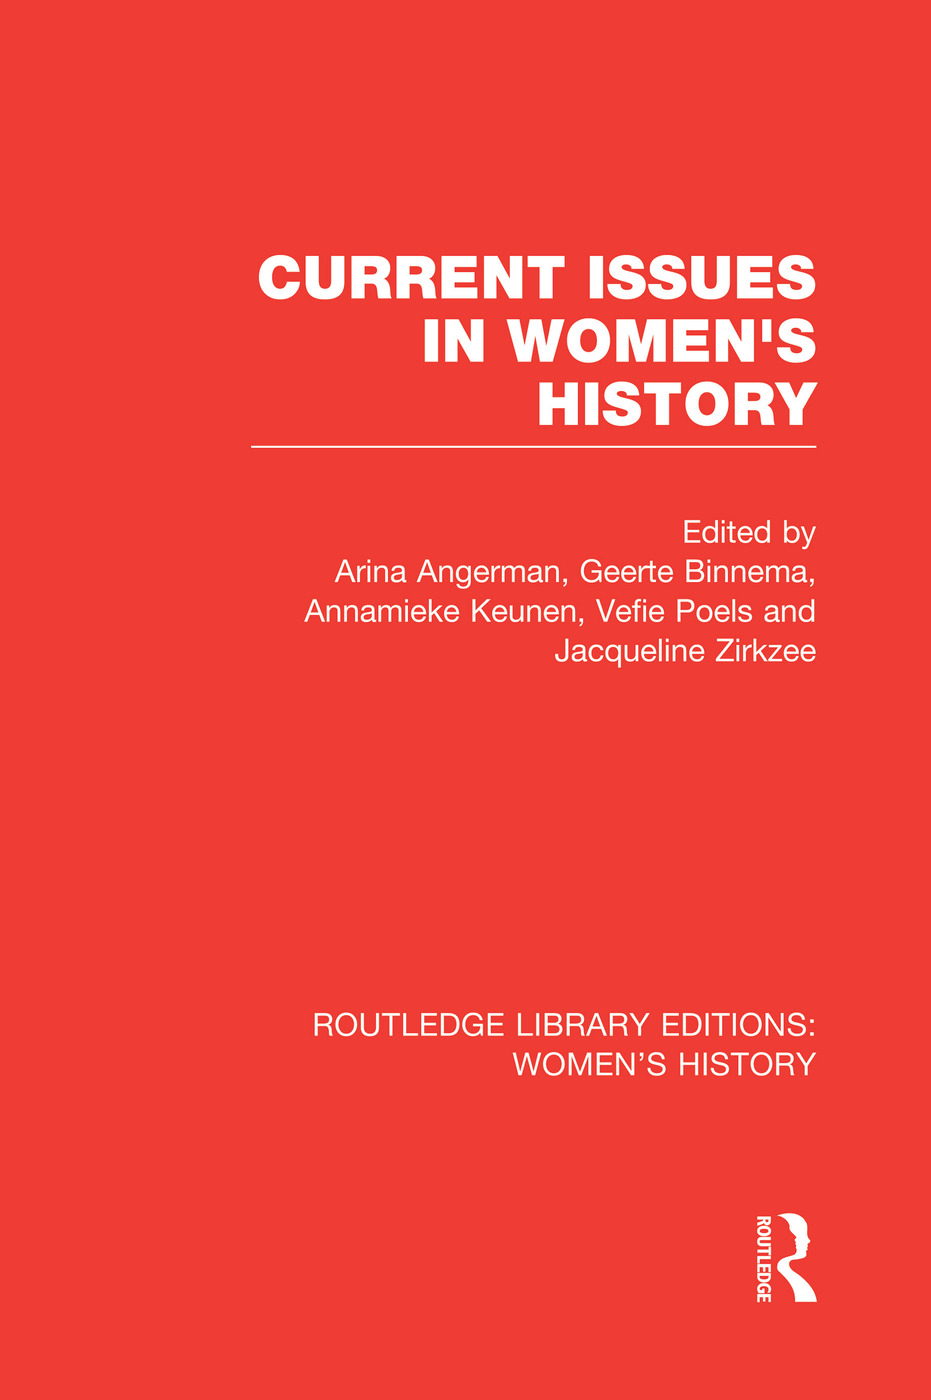 Current Issues in Women's History book cover